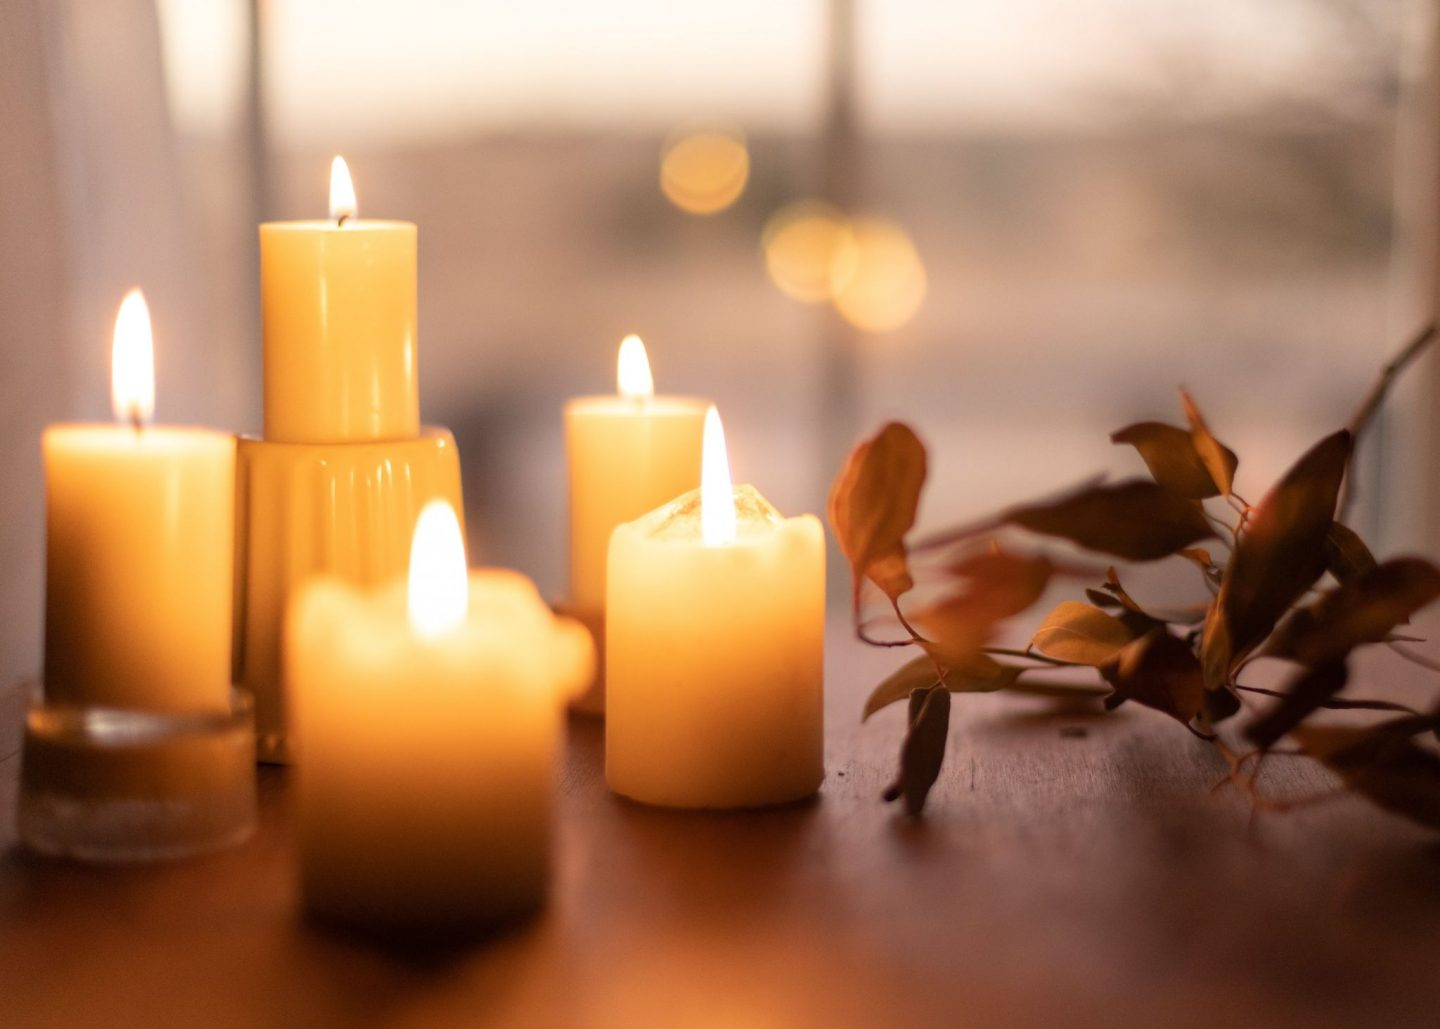 5 CANDLES THAT ELEVATE YOUR HOME DECOR